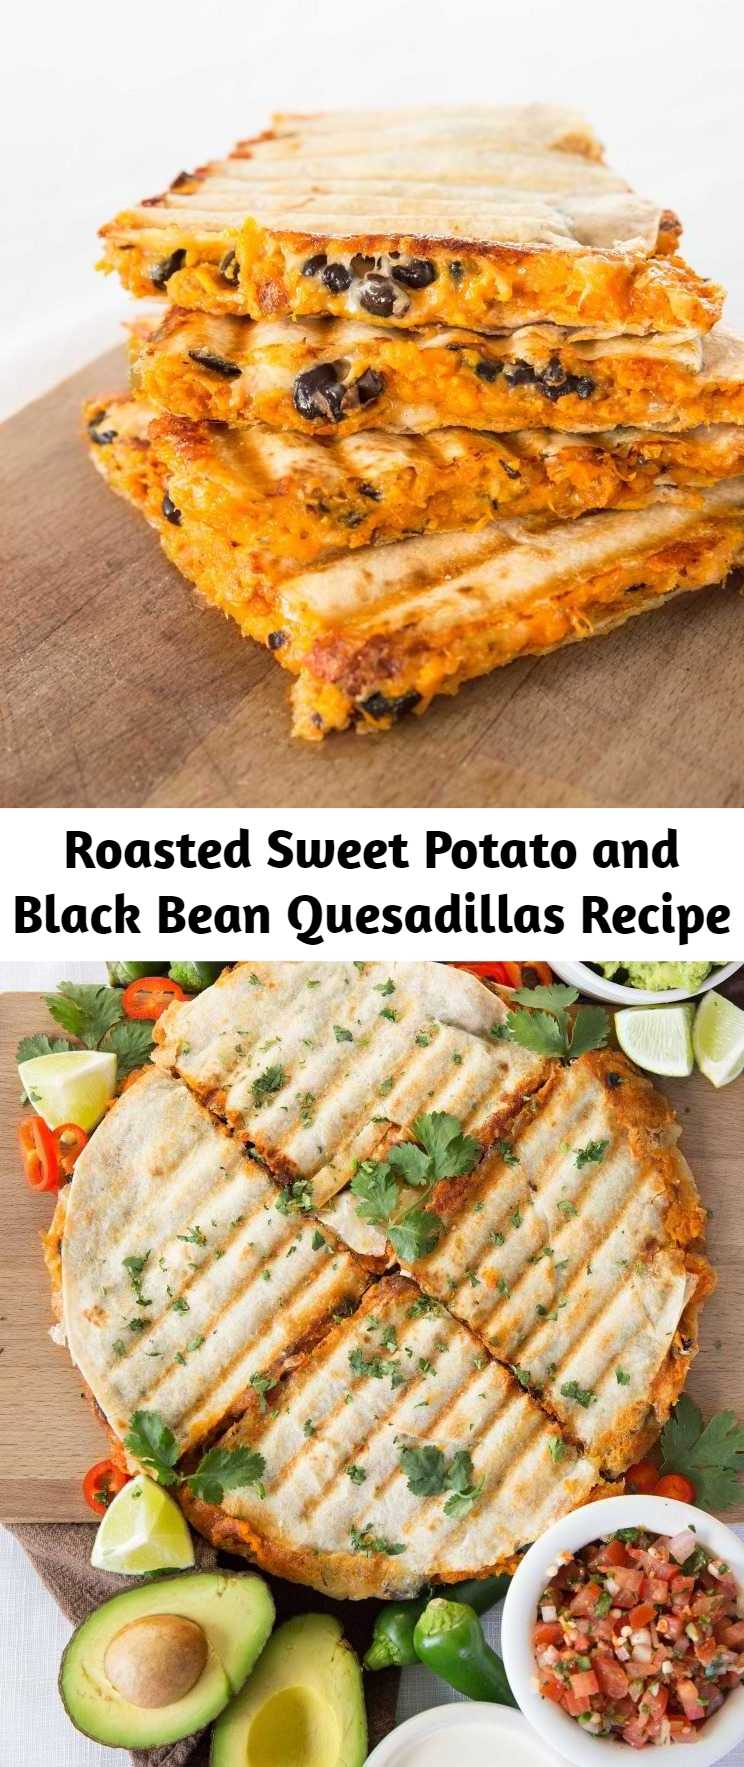 Roasted Sweet Potato and Black Bean Quesadillas Recipe - Roasted Sweet Potato and Black Bean Quesadillas are the best vegetarian quesadillas you'll ever taste. So easy to make and most importantly incredibly delicious and filling! #sweetpotato #quesadillas #vegetarian #vegetarianquesadillas #sweetpotatoquesadillas